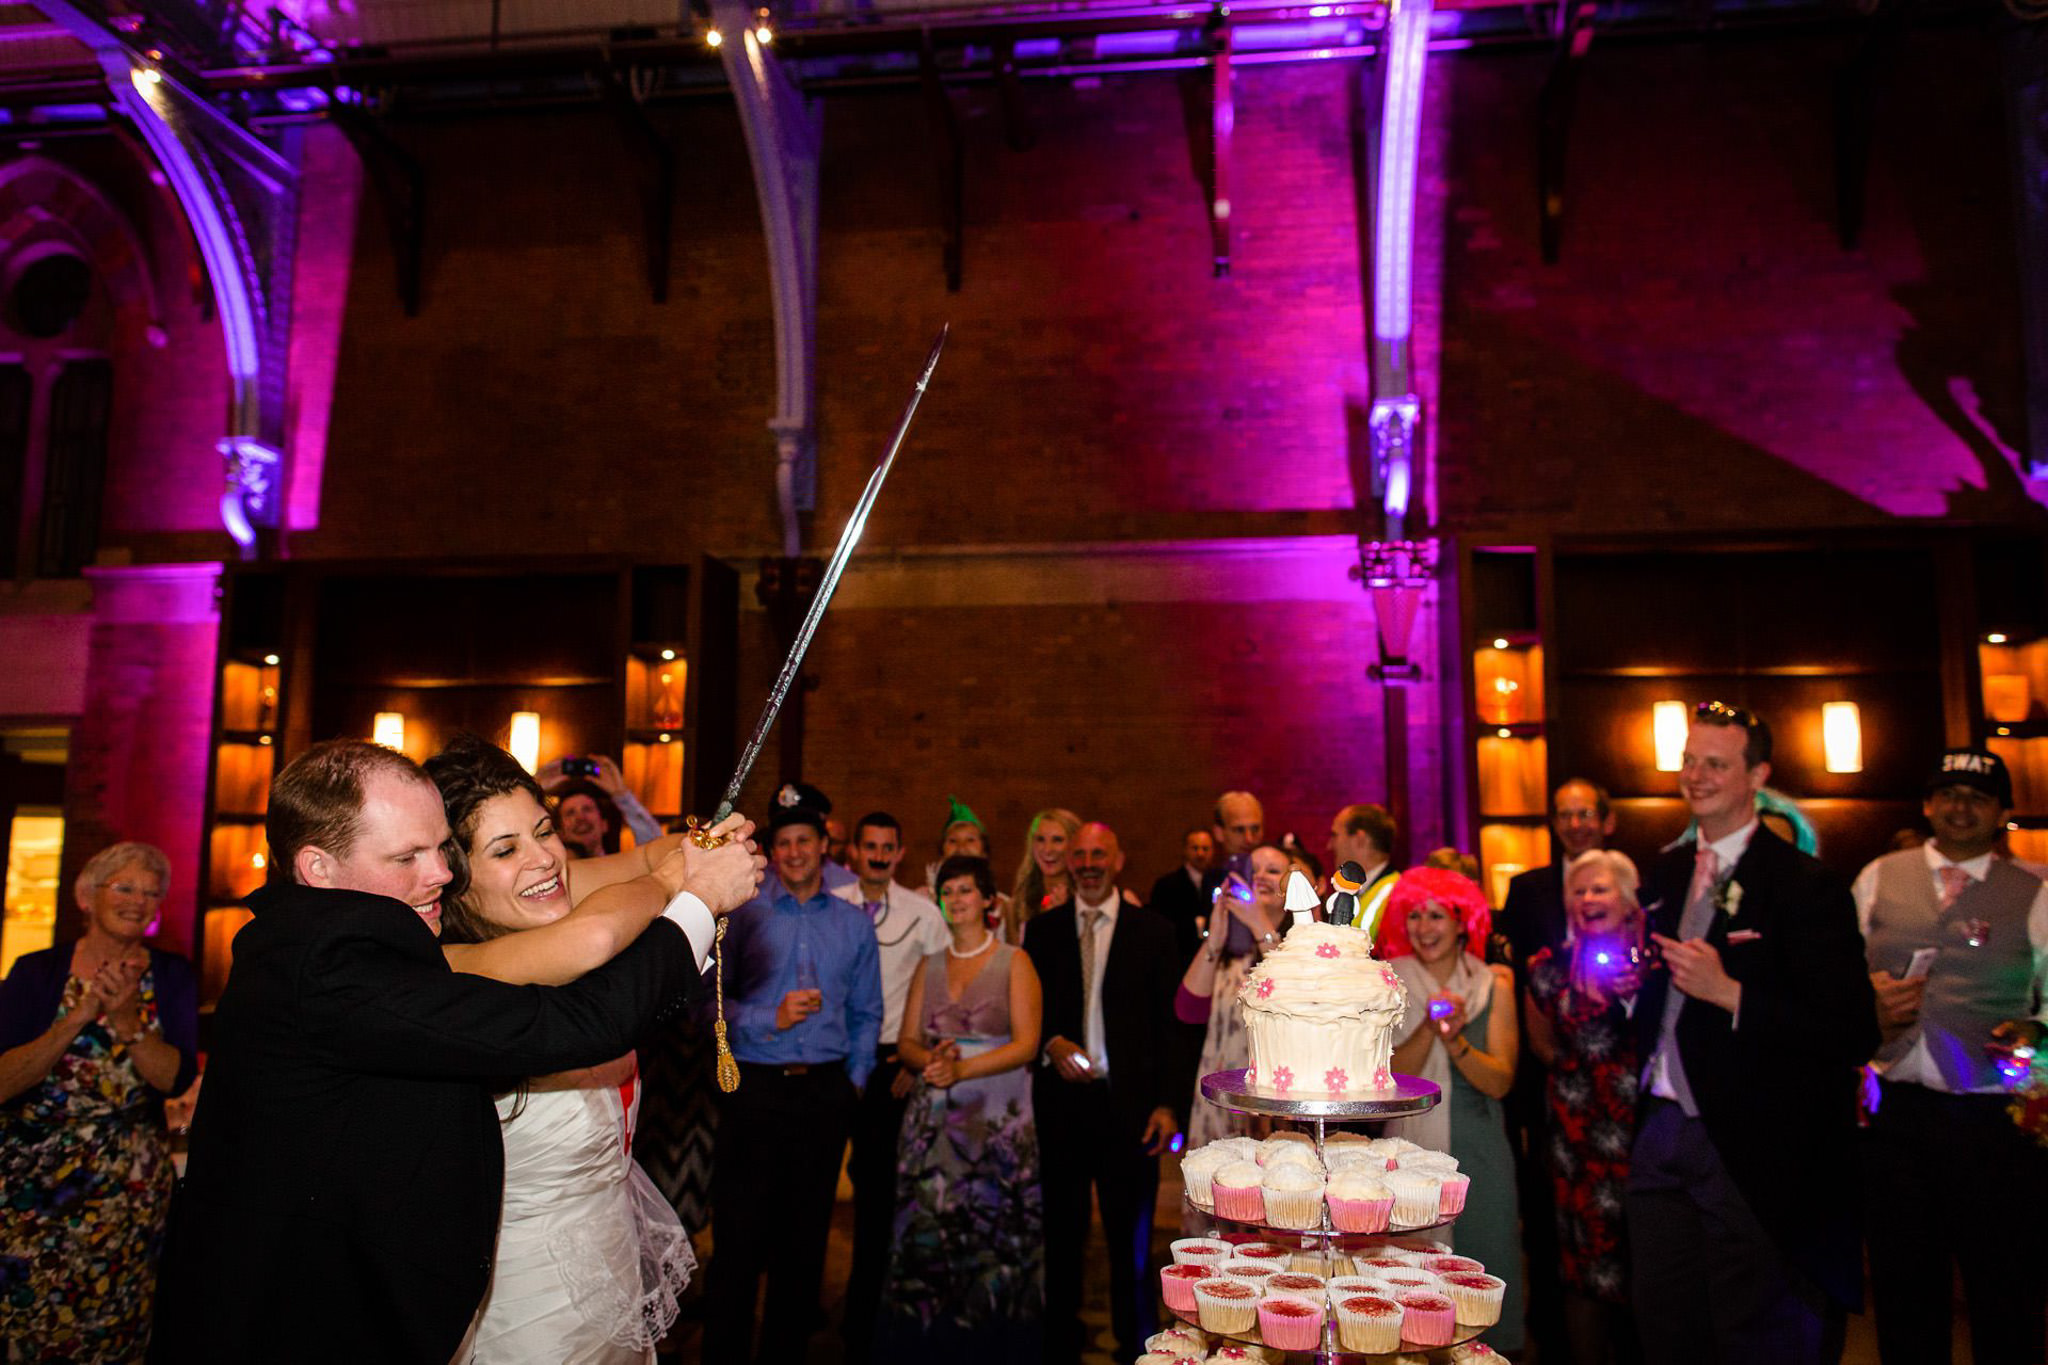 St. Pancras hotel wedding cutting the cake with a sword